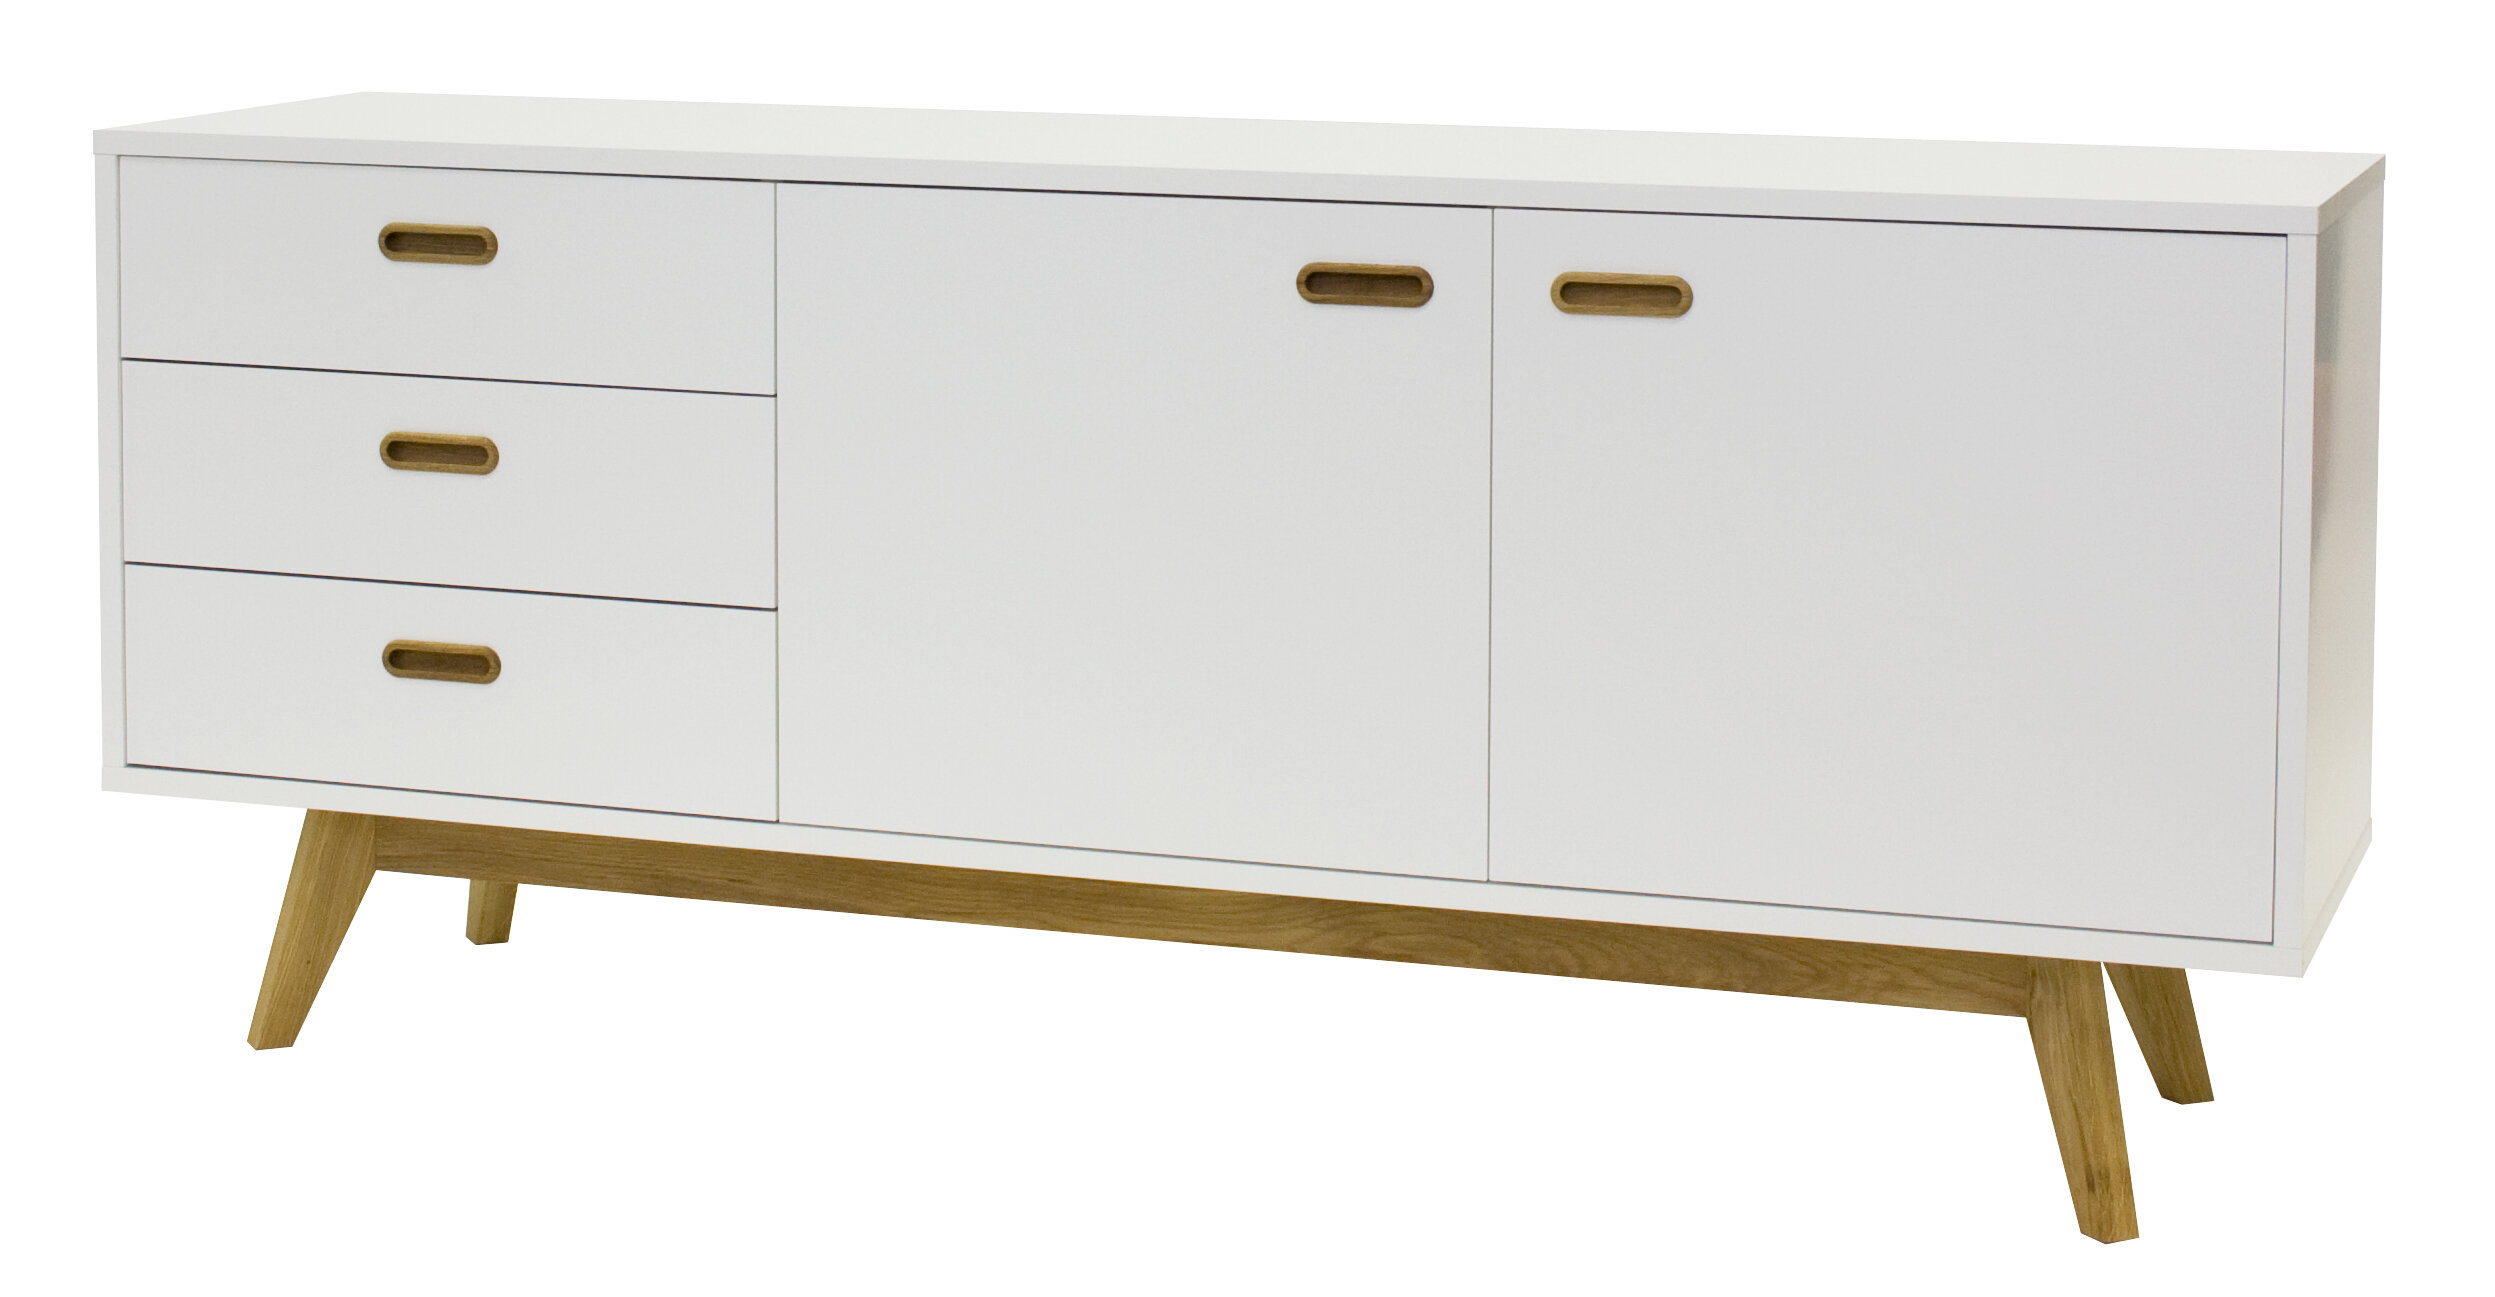 Mikado Living Farragut Sideboard Reviews Wayfair Co Uk